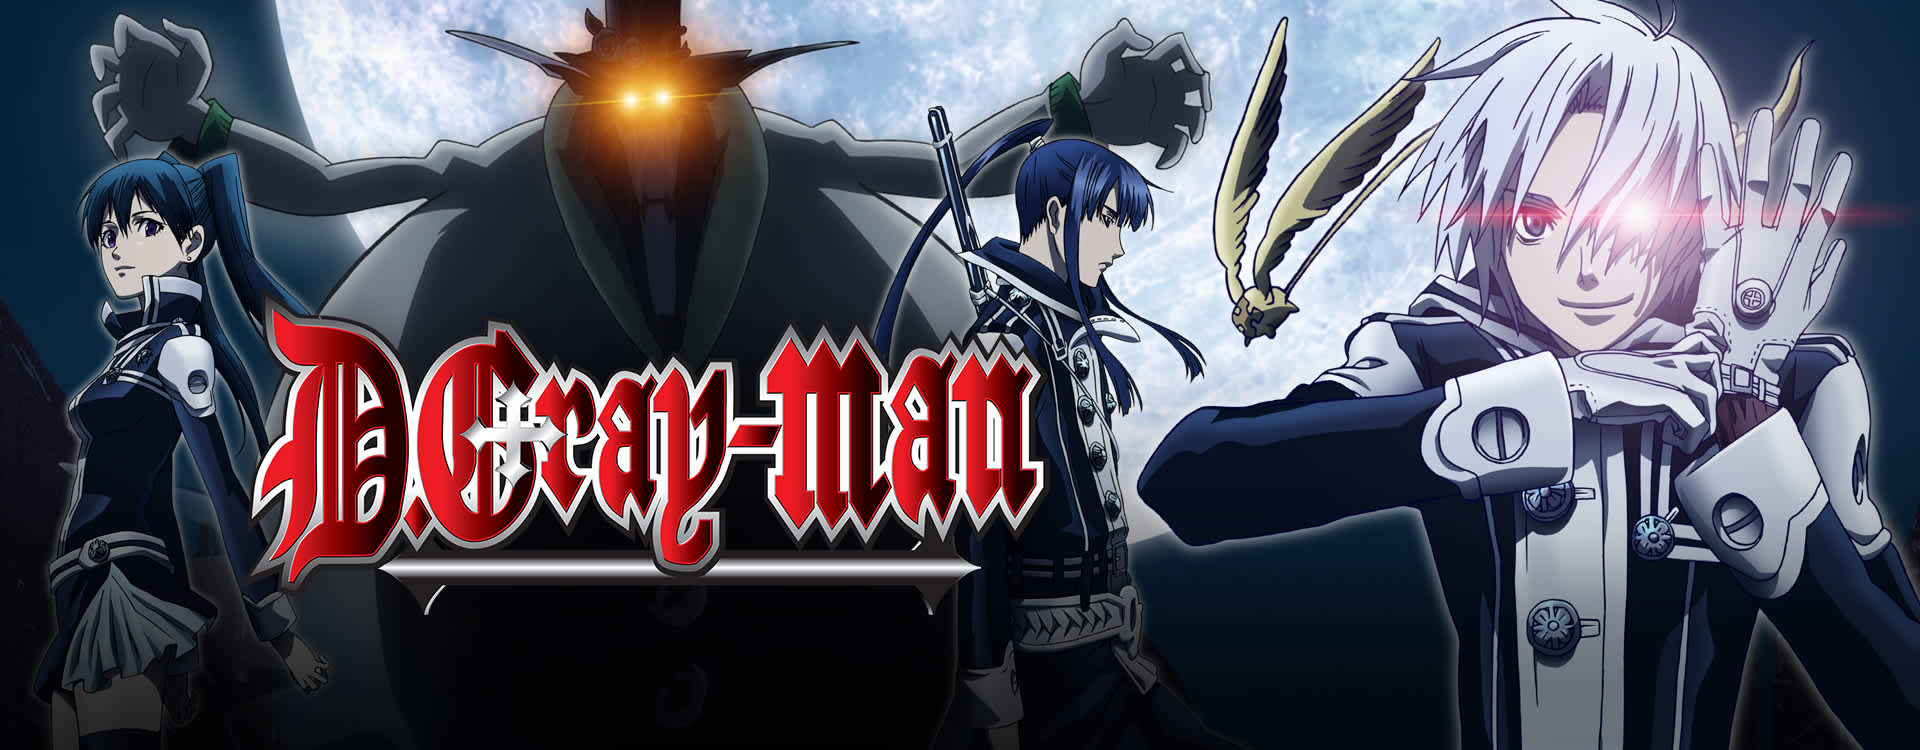 Stream Watch DGray Man Episodes Online Sub Dub